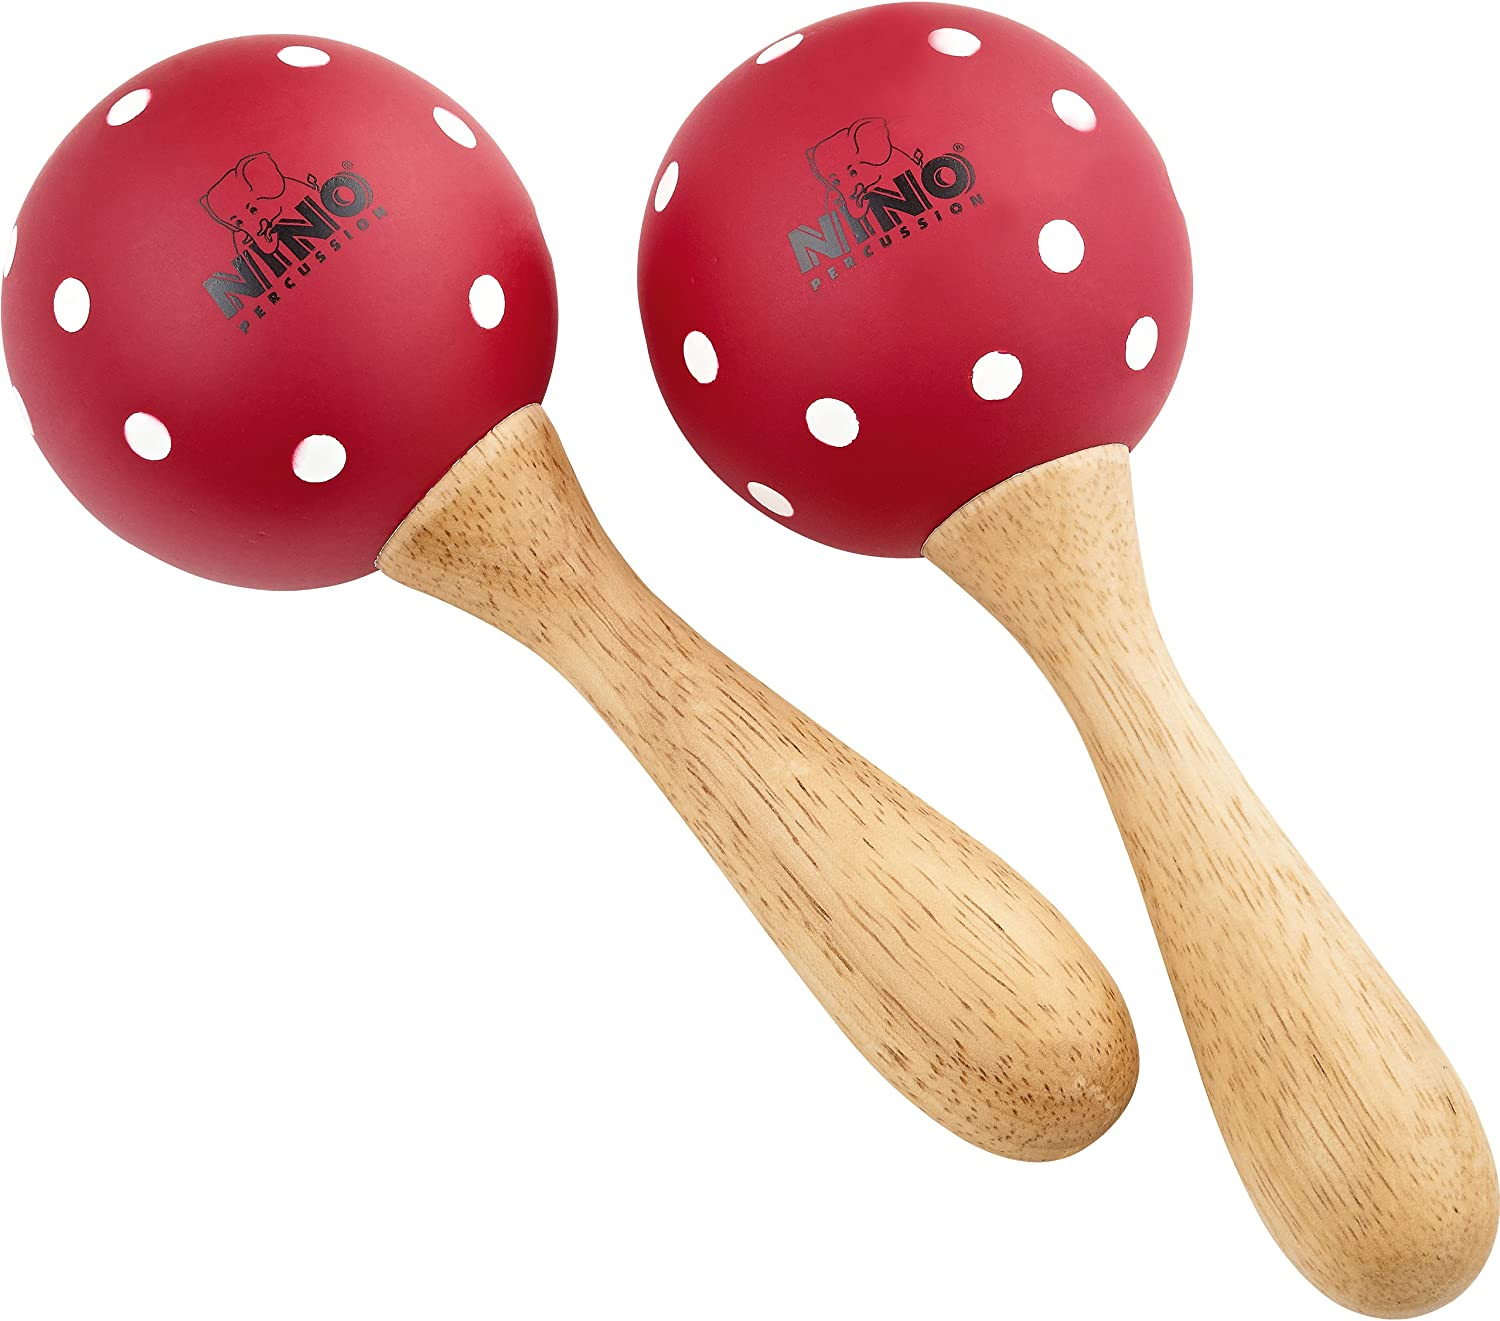 Nino Percussion NINO8PD-R Max 74% OFF Medium Wood Cheap mail order specialty store Maracas P Red with White -